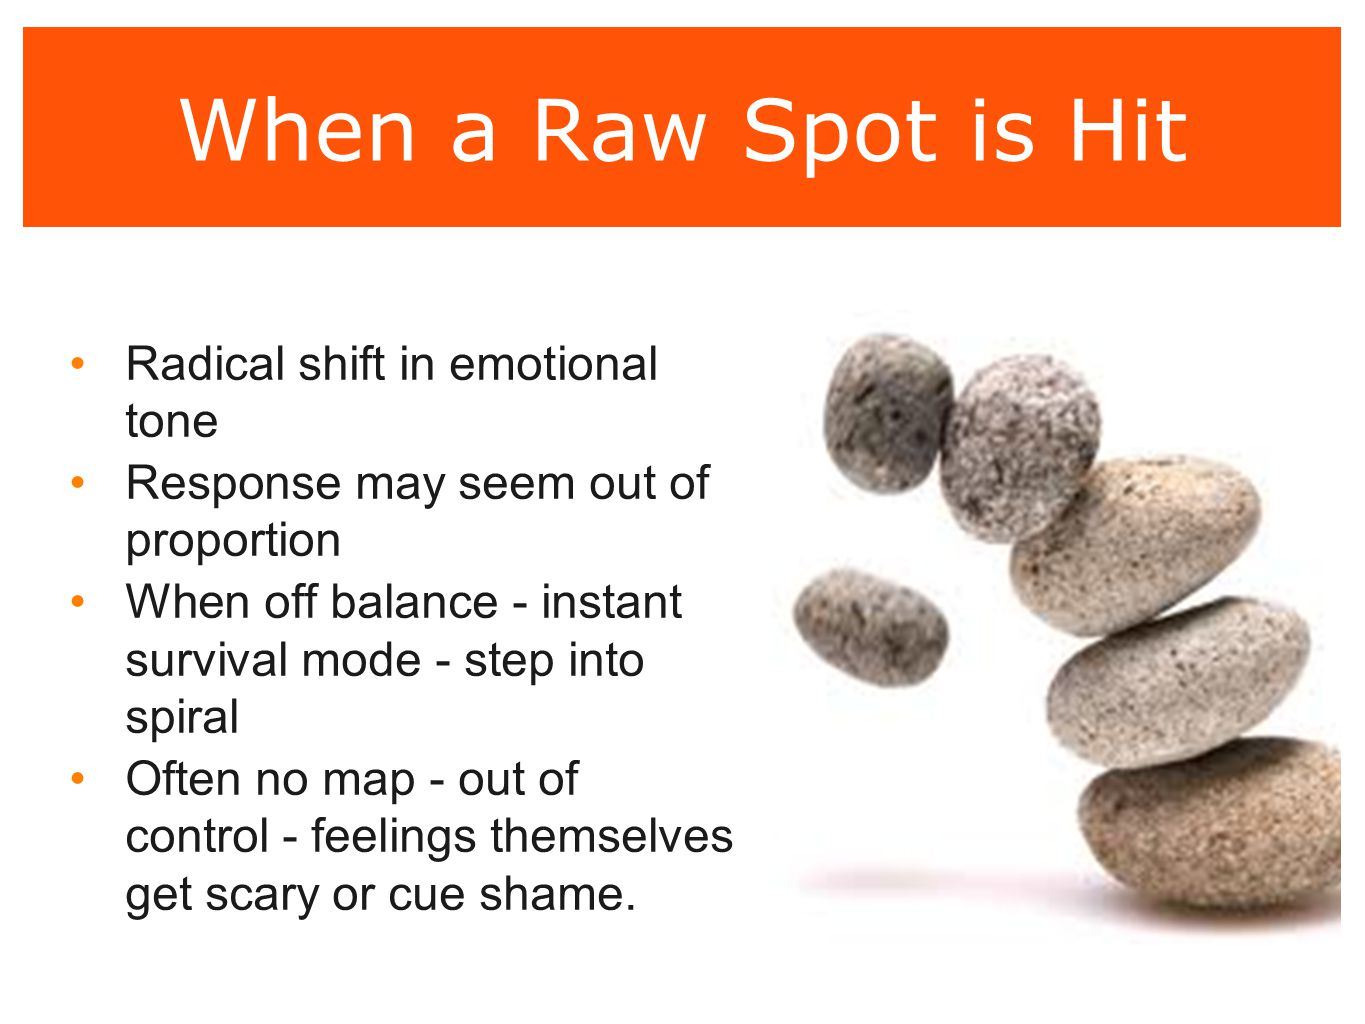 When a Raw Spot is Hit Radical shift in emotional tone Response may seem out of proportion When off balance - instant survival mode - step into spiral